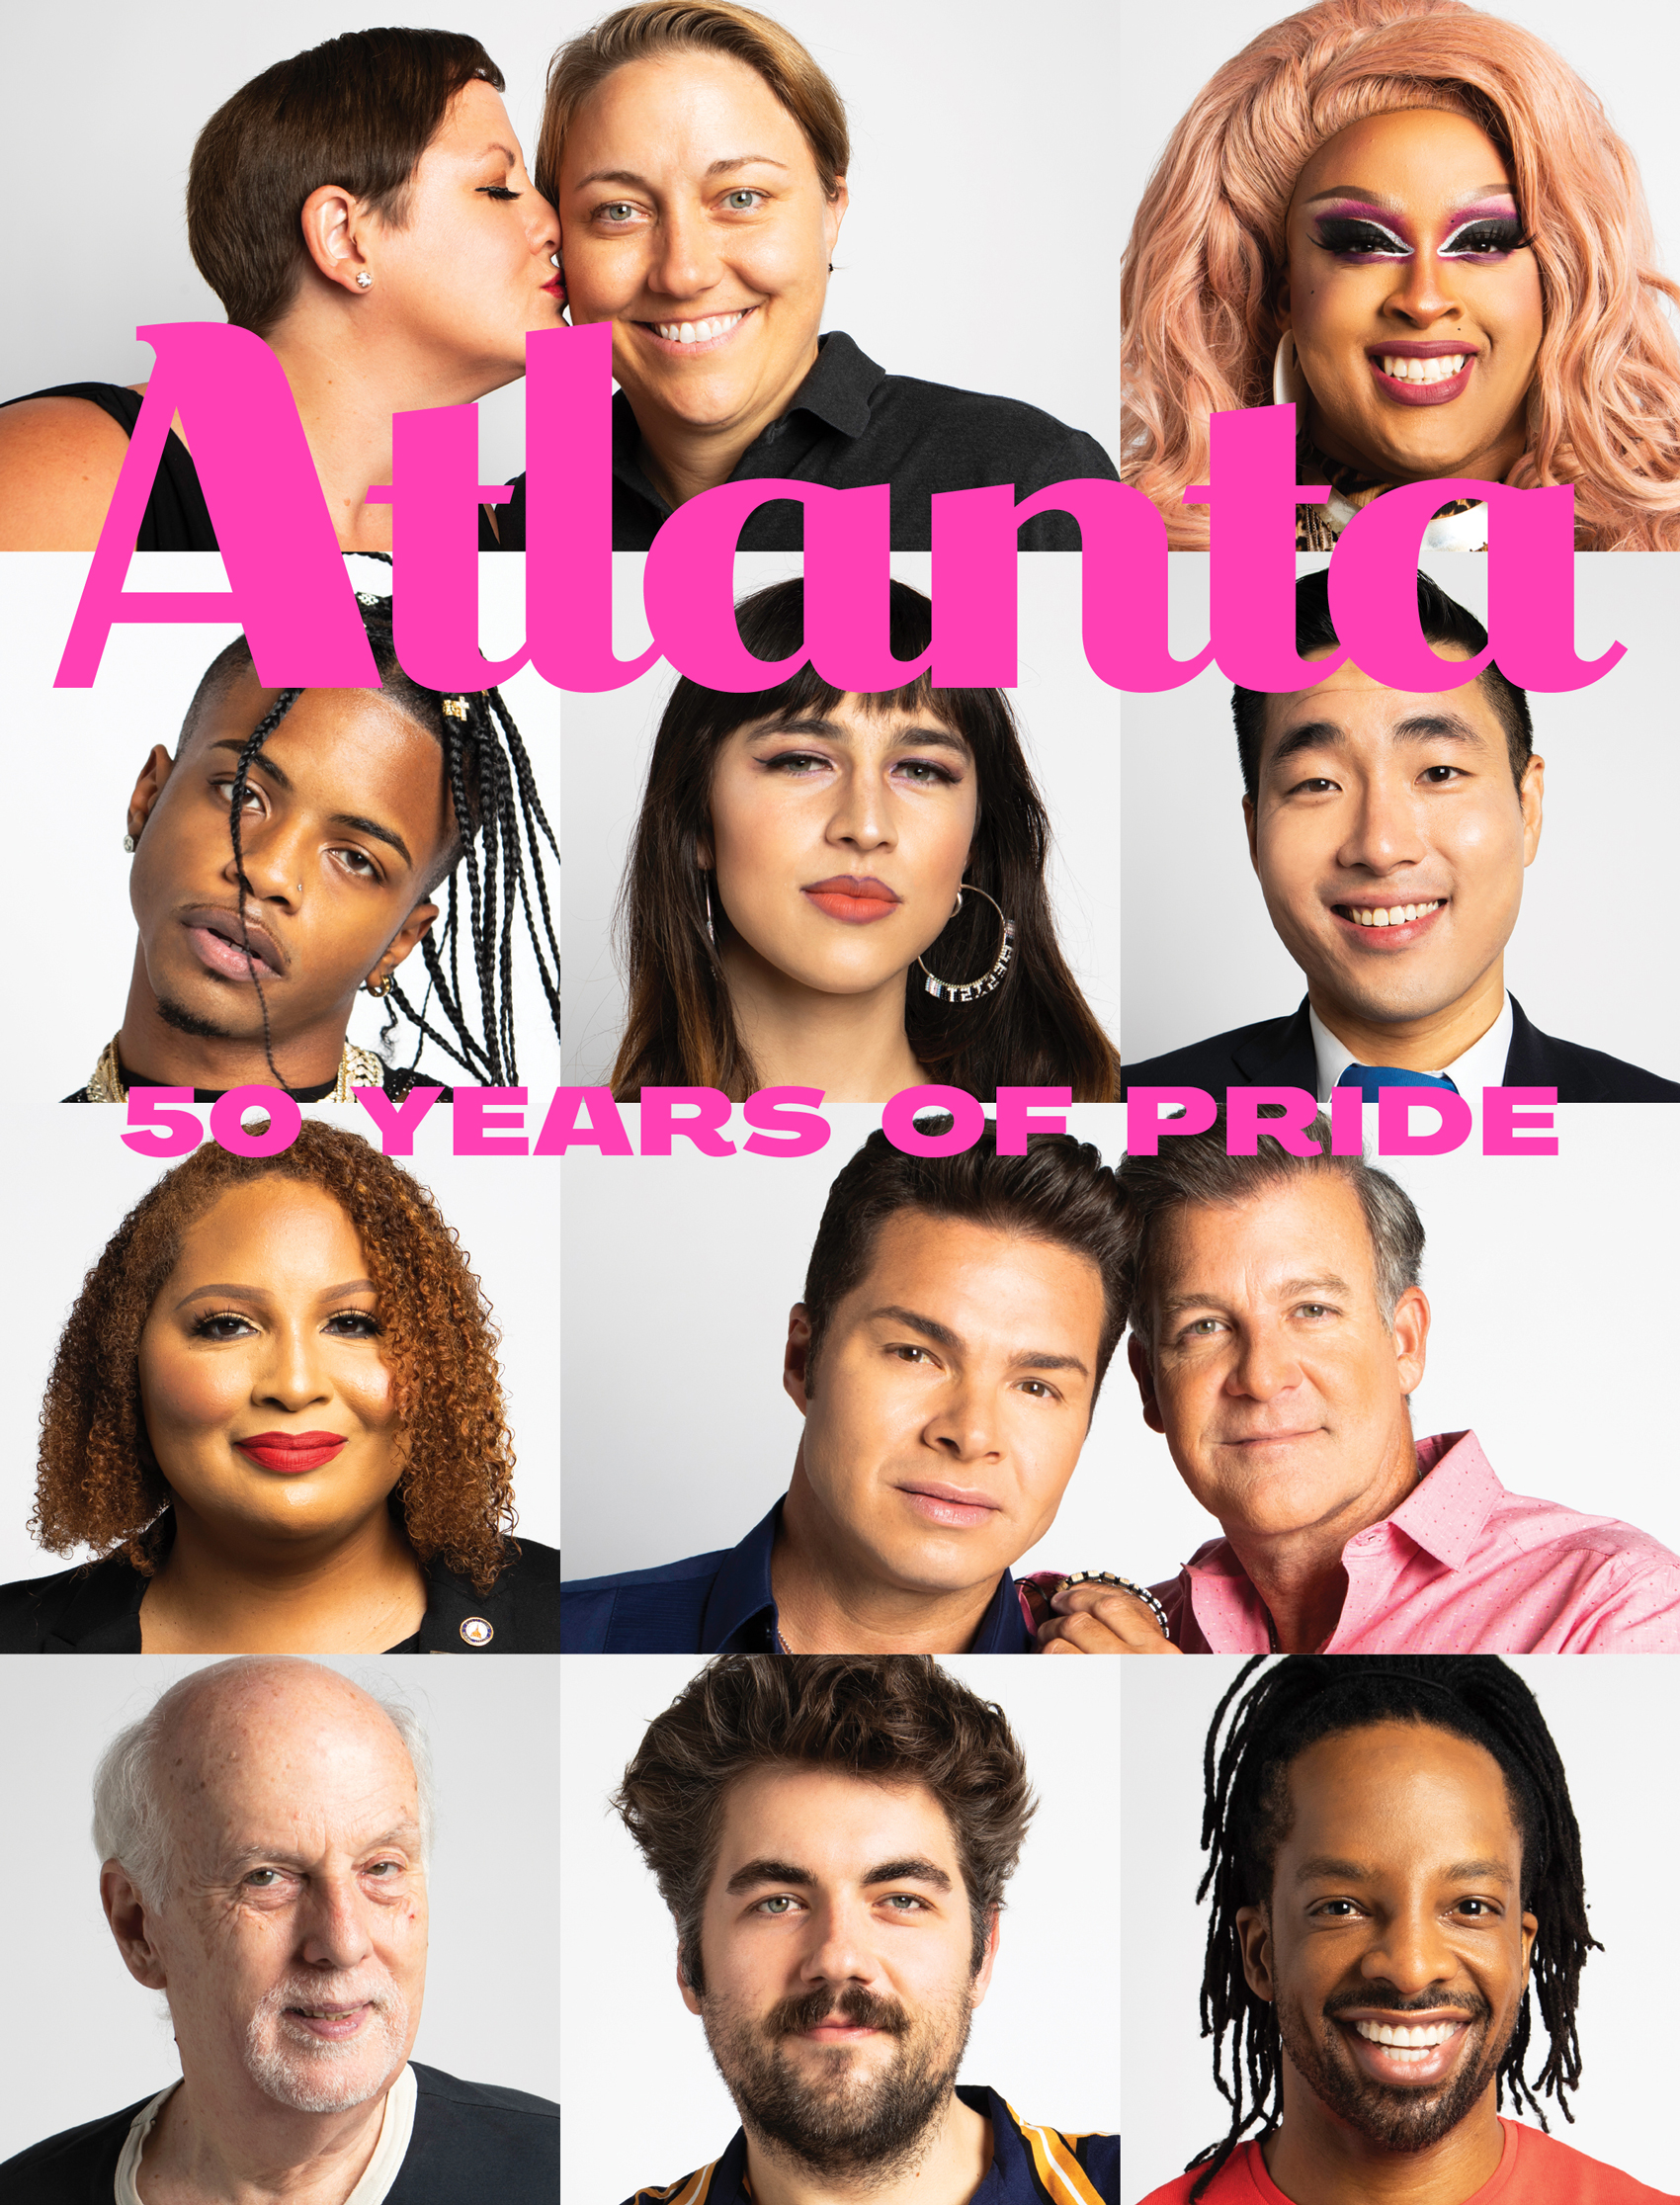 Atlanta Magazine October 2020 cover - 50 Years of Pride